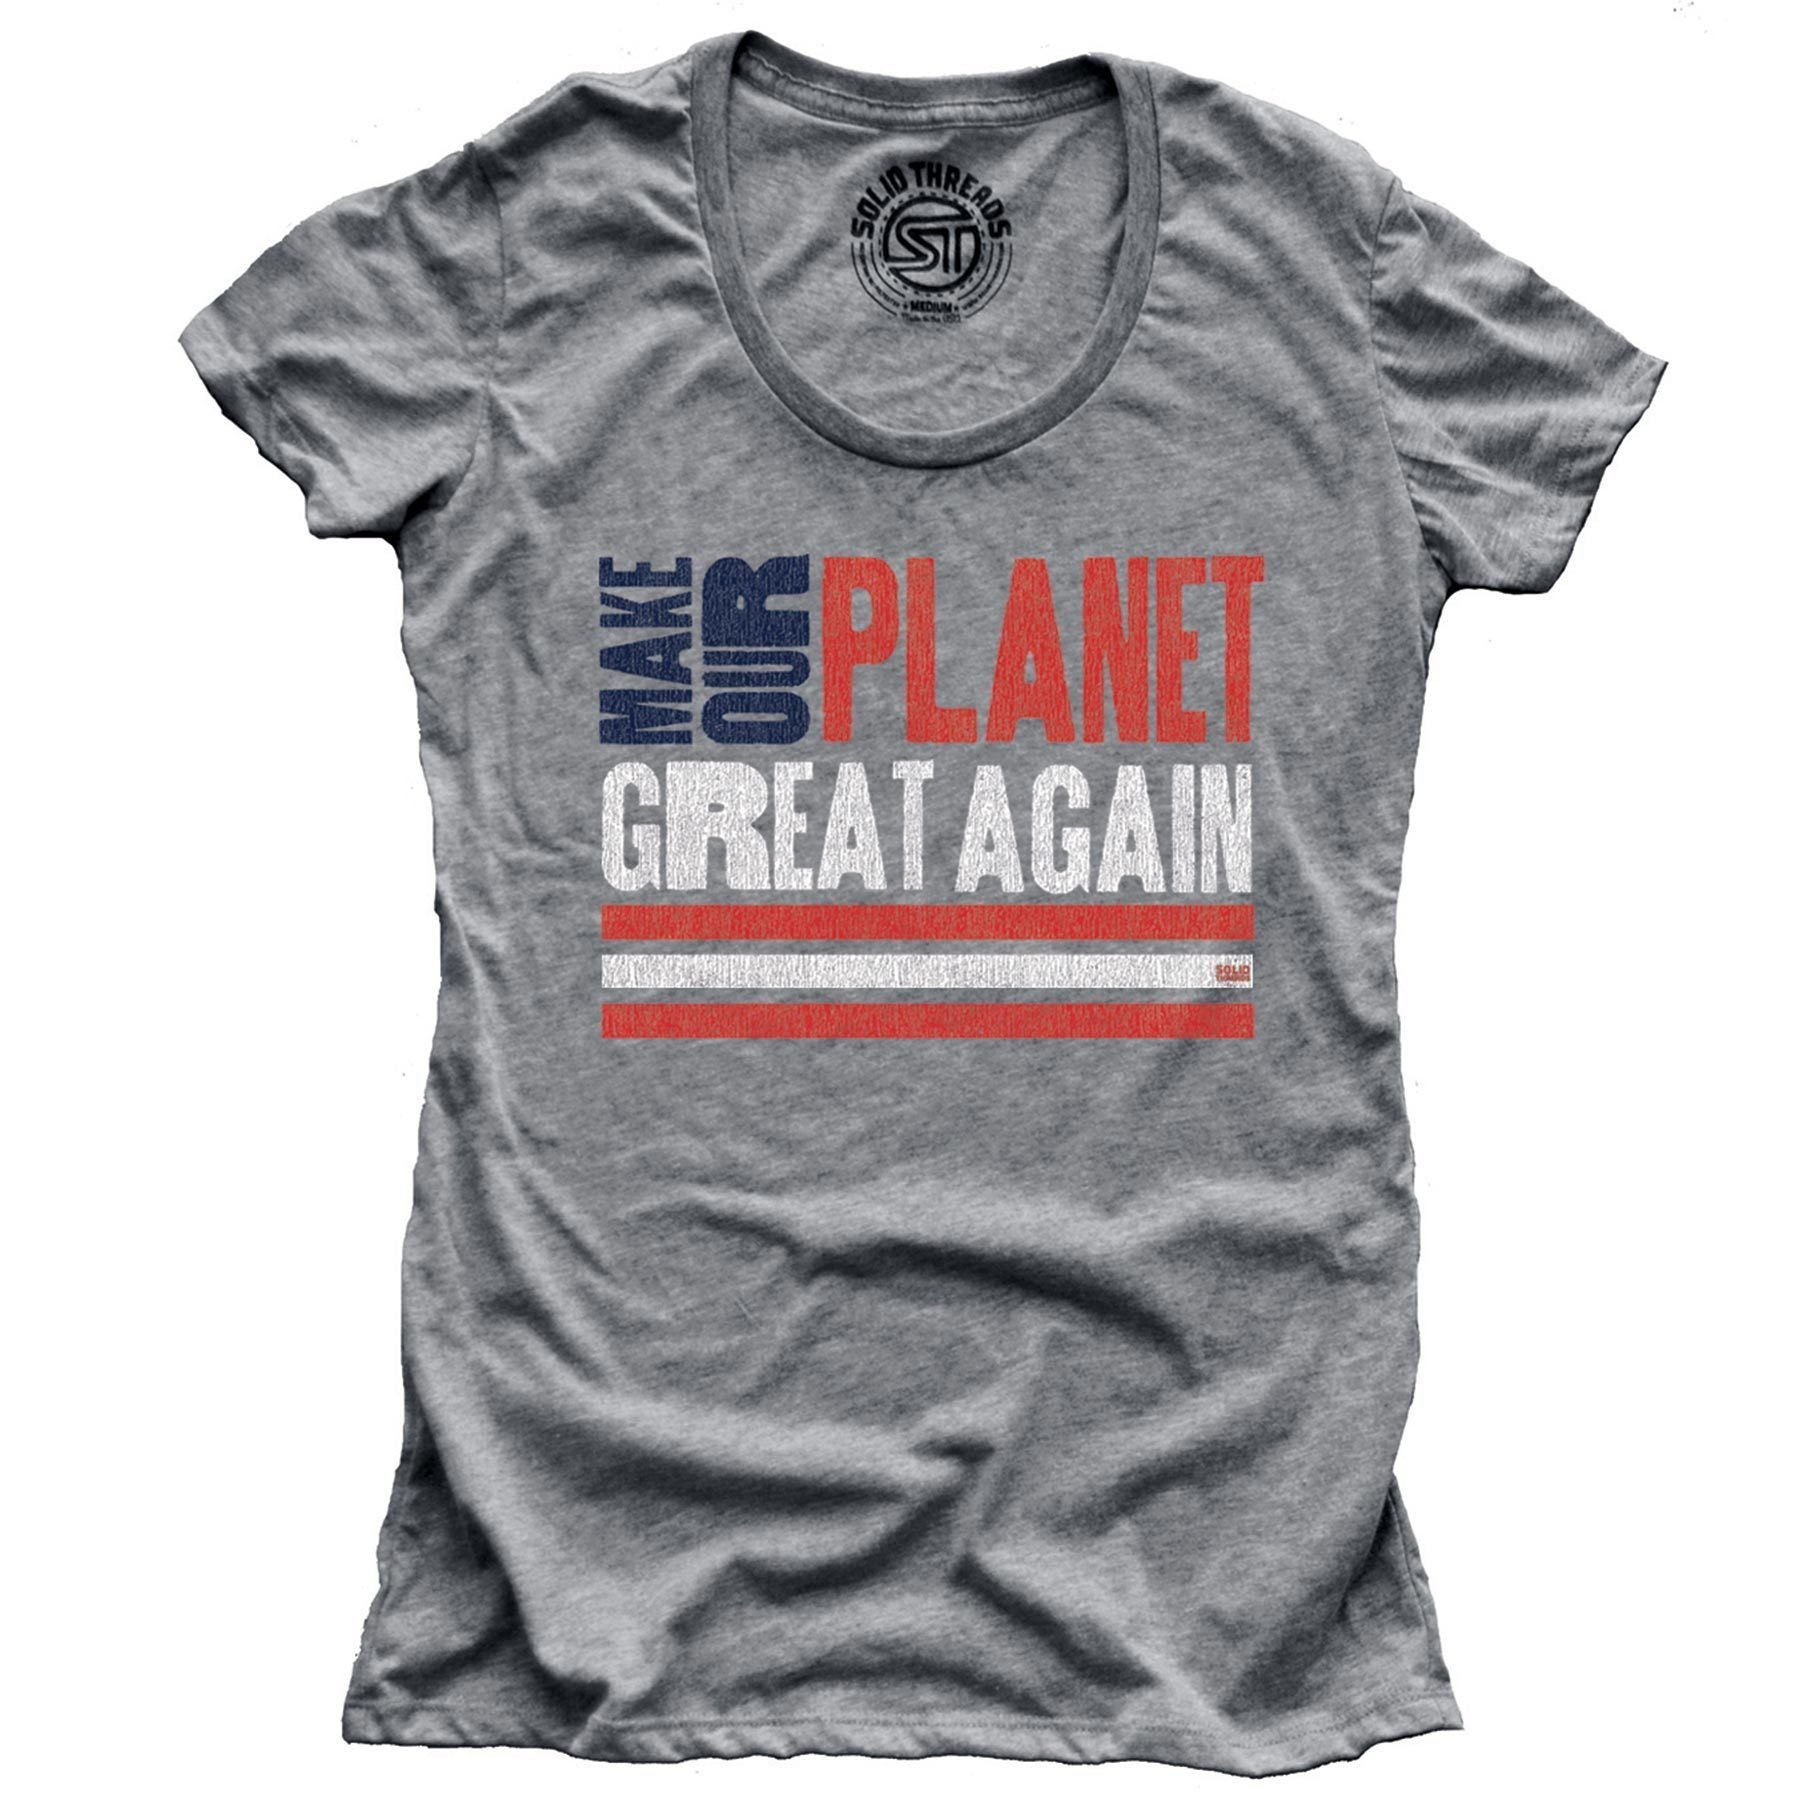 Women's Make Our Planet Great Again Vintage T-shirt | SOLID THREADS